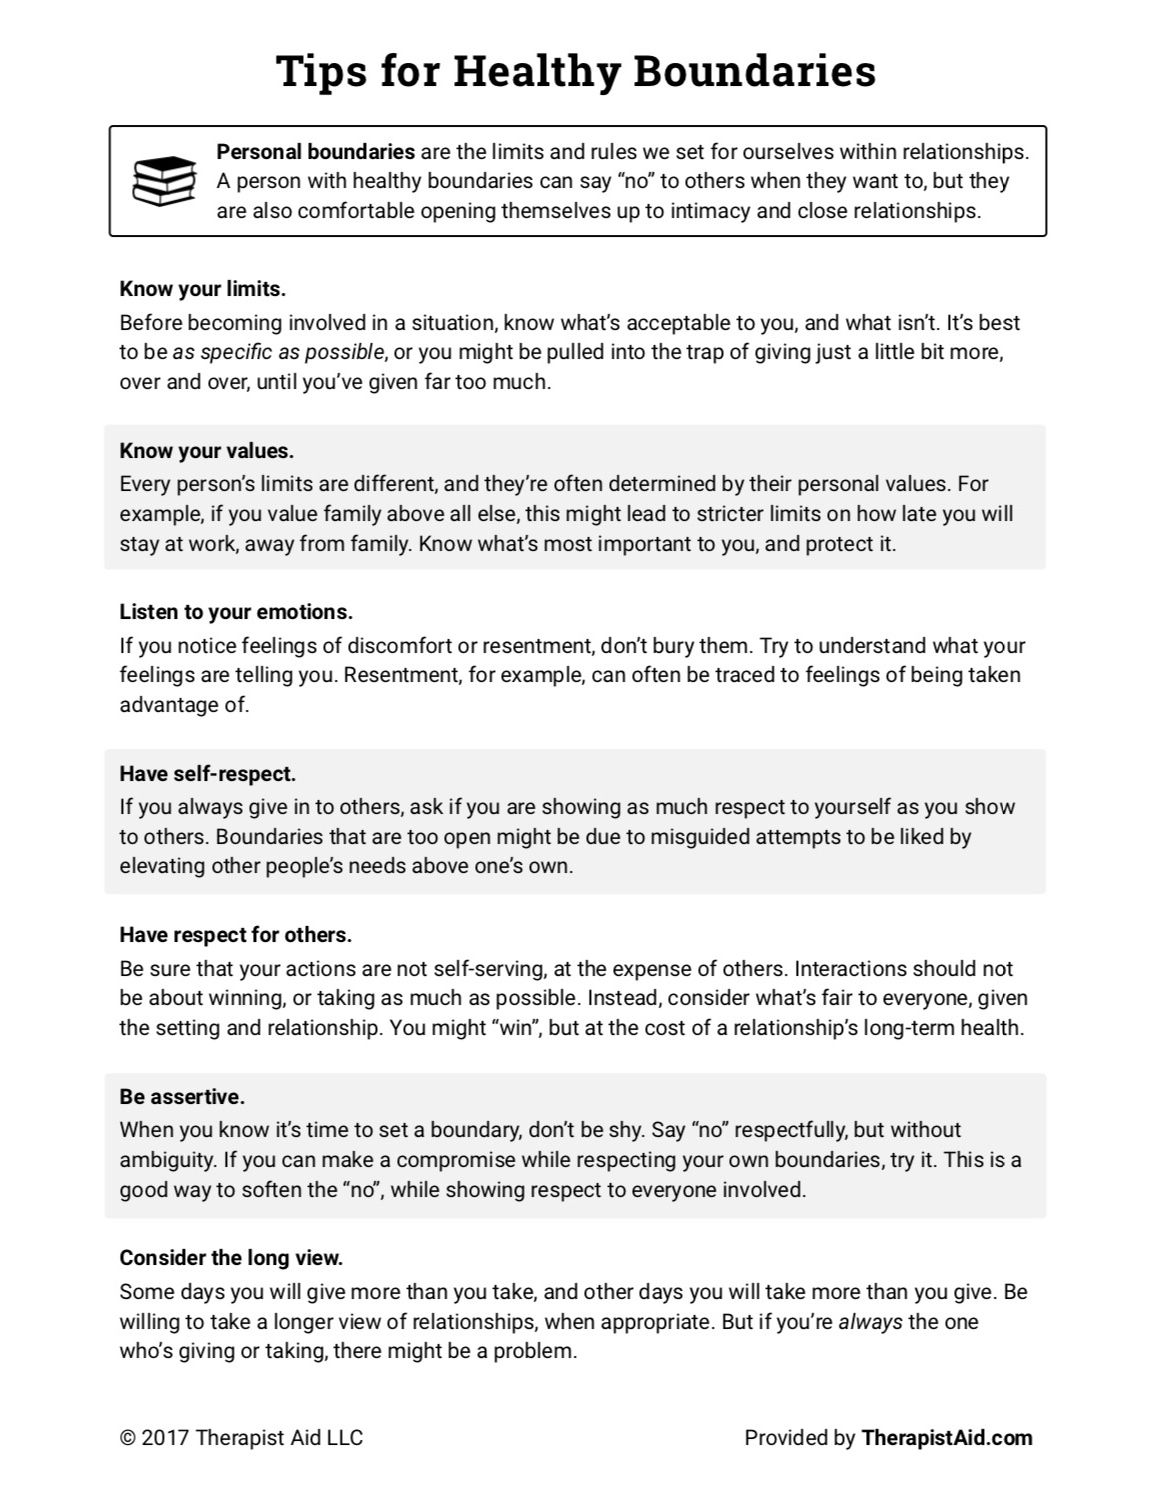 Healthy Boundaries Tips Worksheet